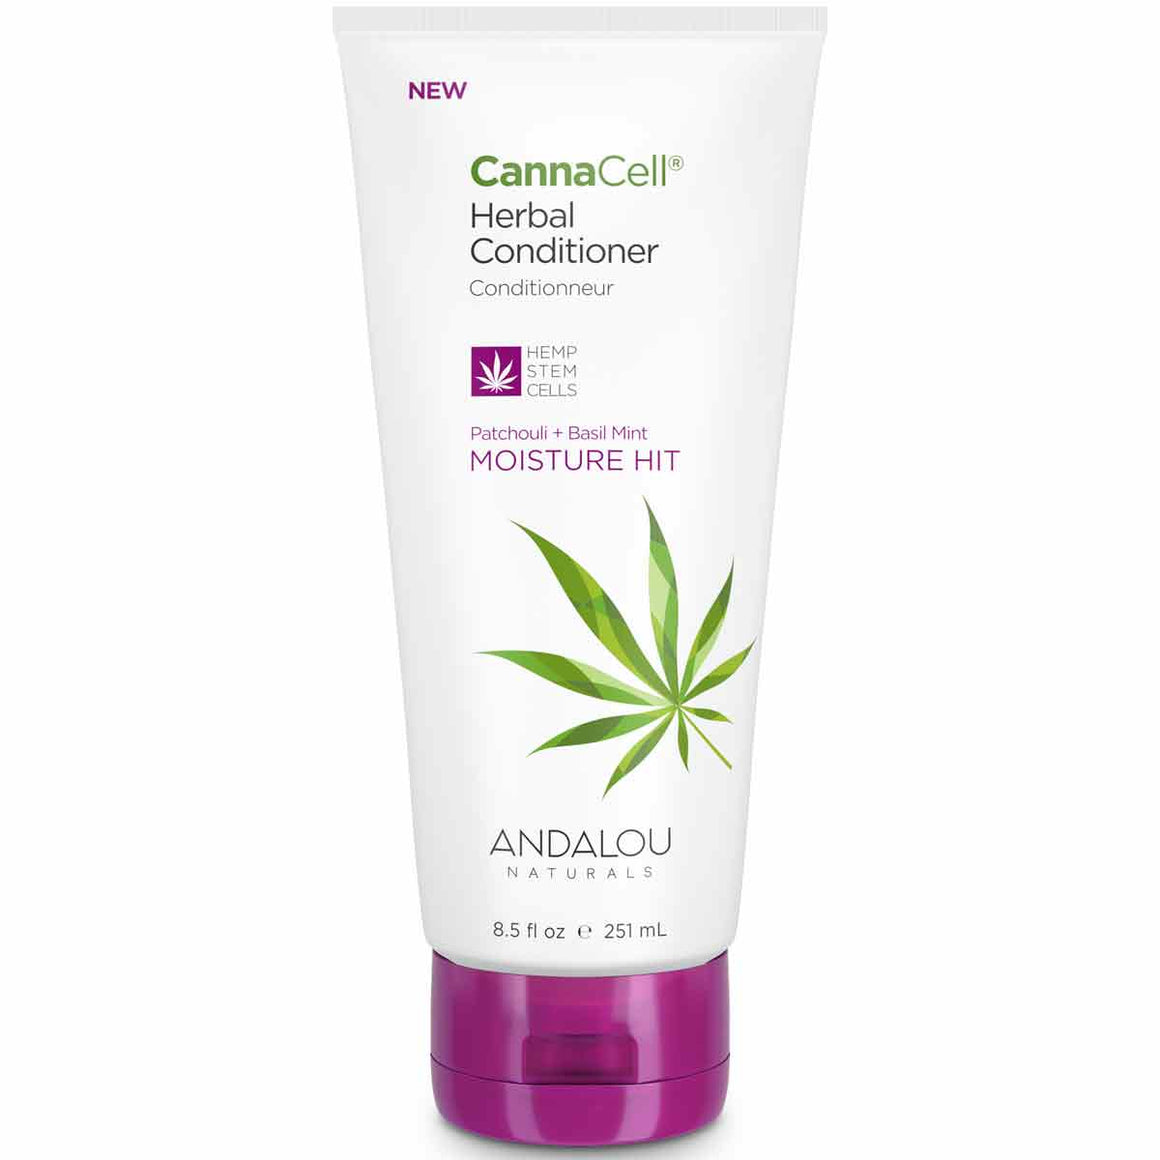 CannaCell® Herbal Conditioner - MOISTURE HIT